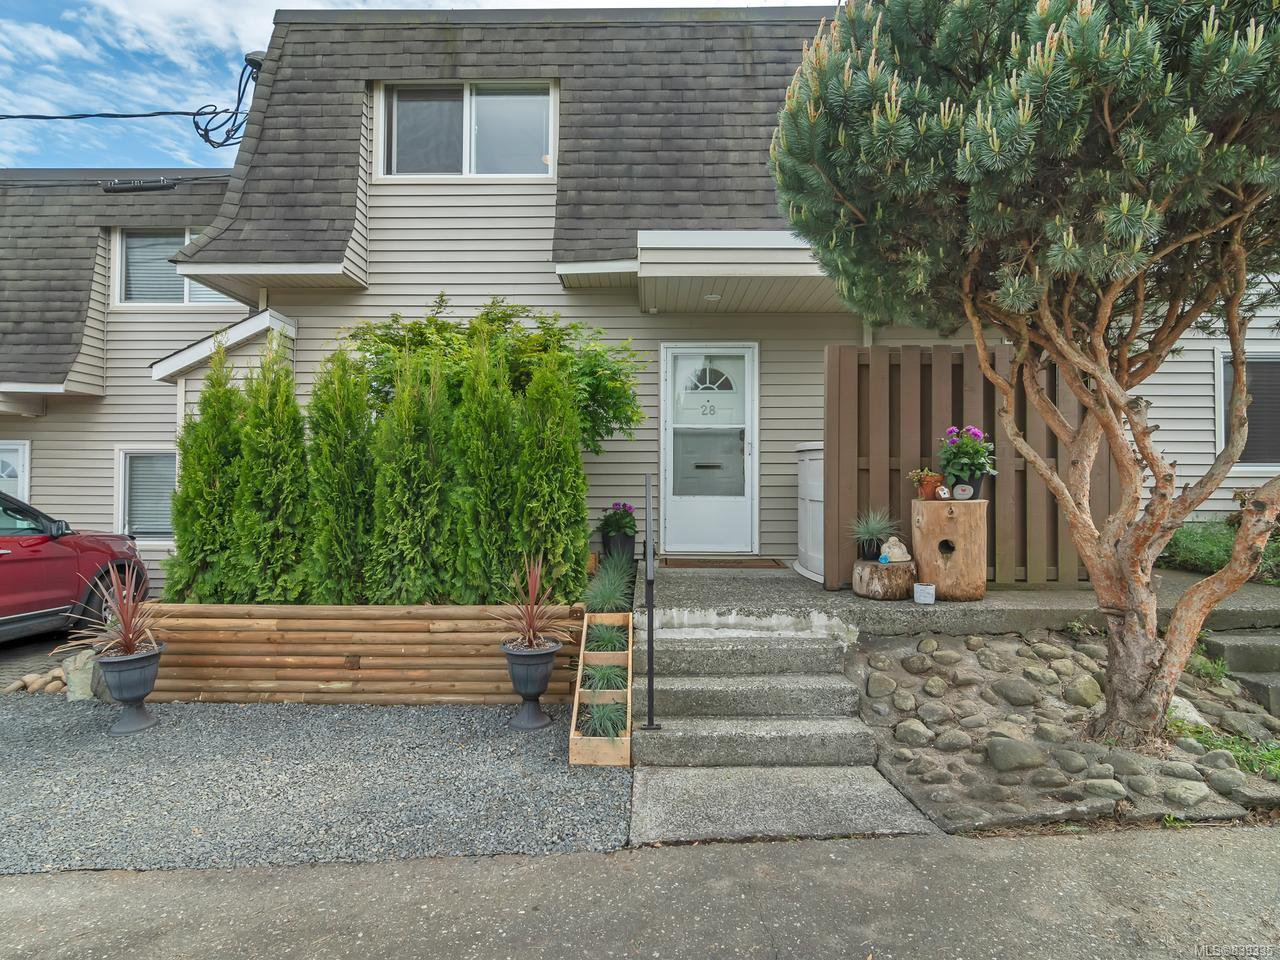 Main Photo: 28 270 Evergreen Rd in CAMPBELL RIVER: CR Campbell River Central Row/Townhouse for sale (Campbell River)  : MLS®# 839335